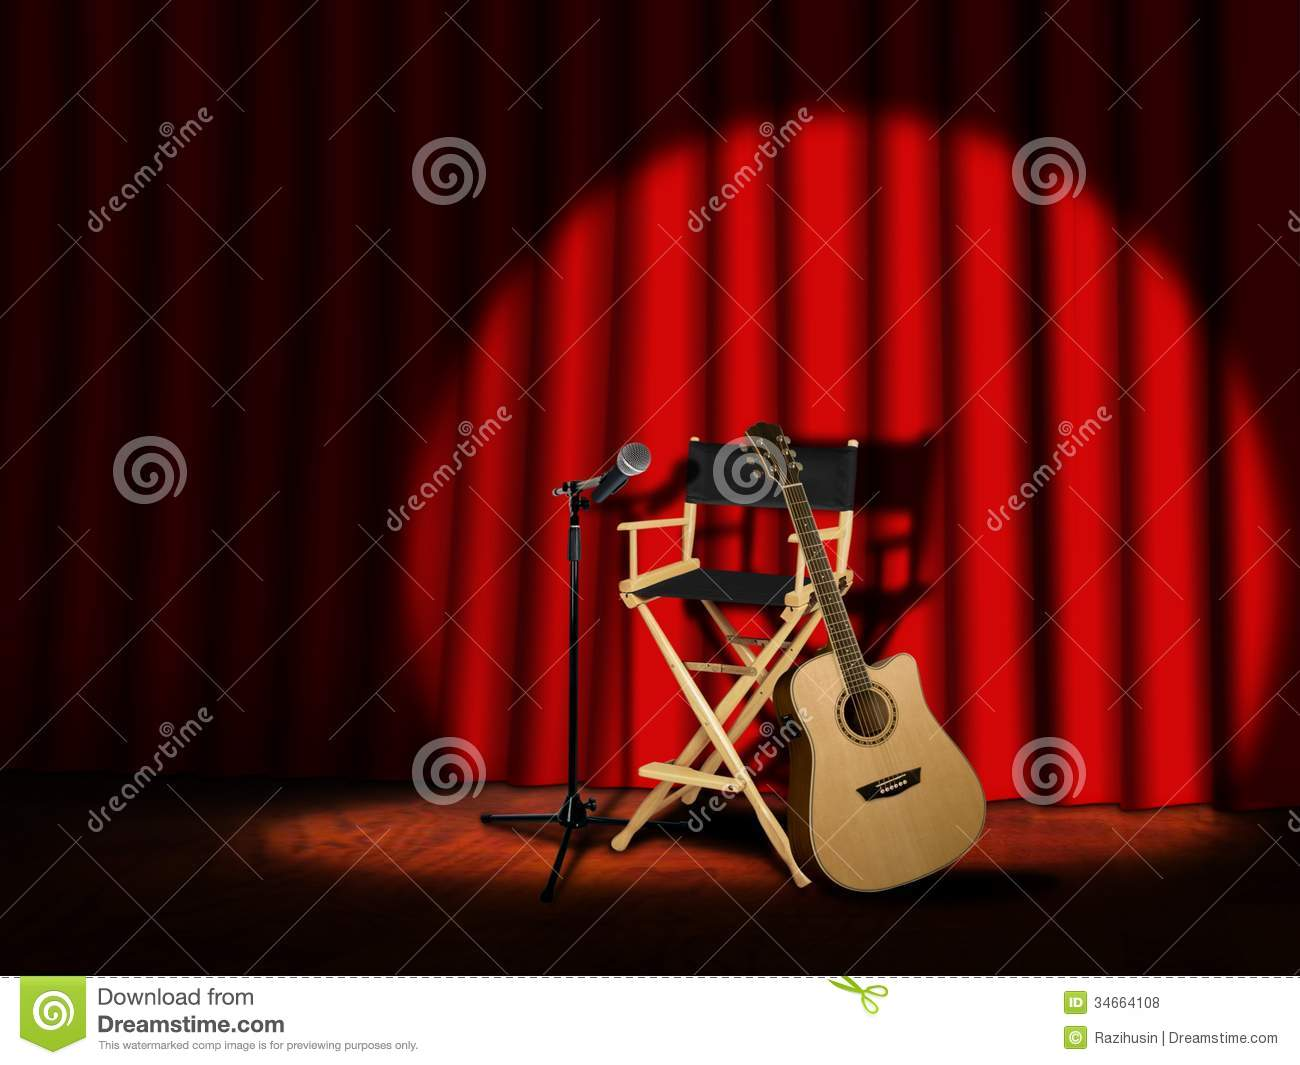 Microphone and Guitar on stage with Curtain